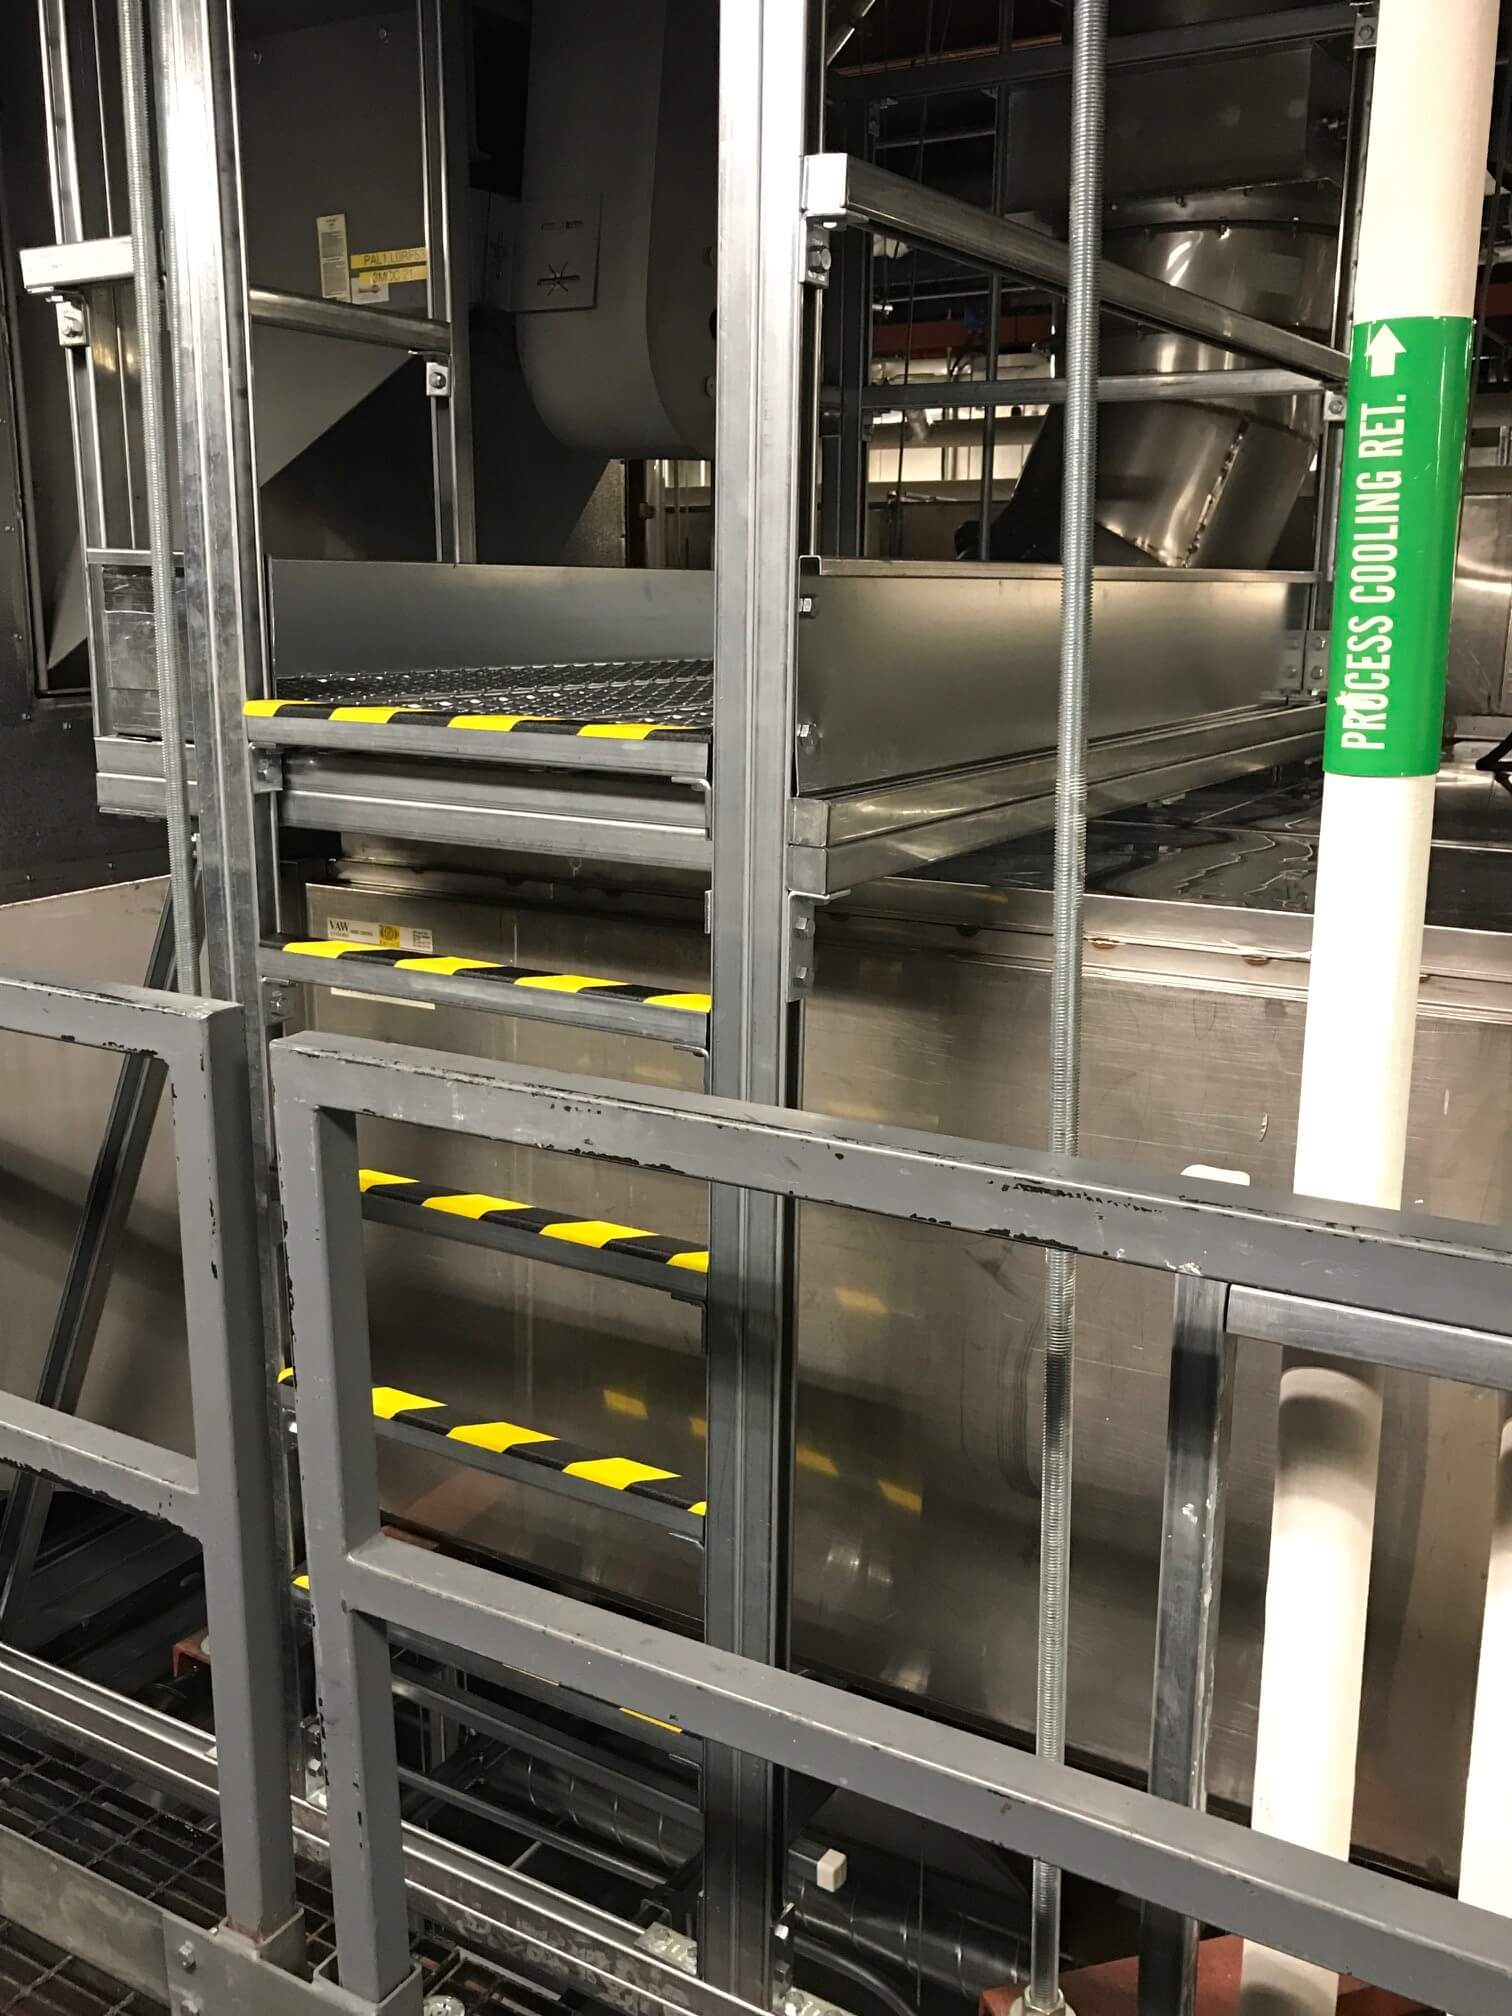 Fall Protection Safety Access Ladder